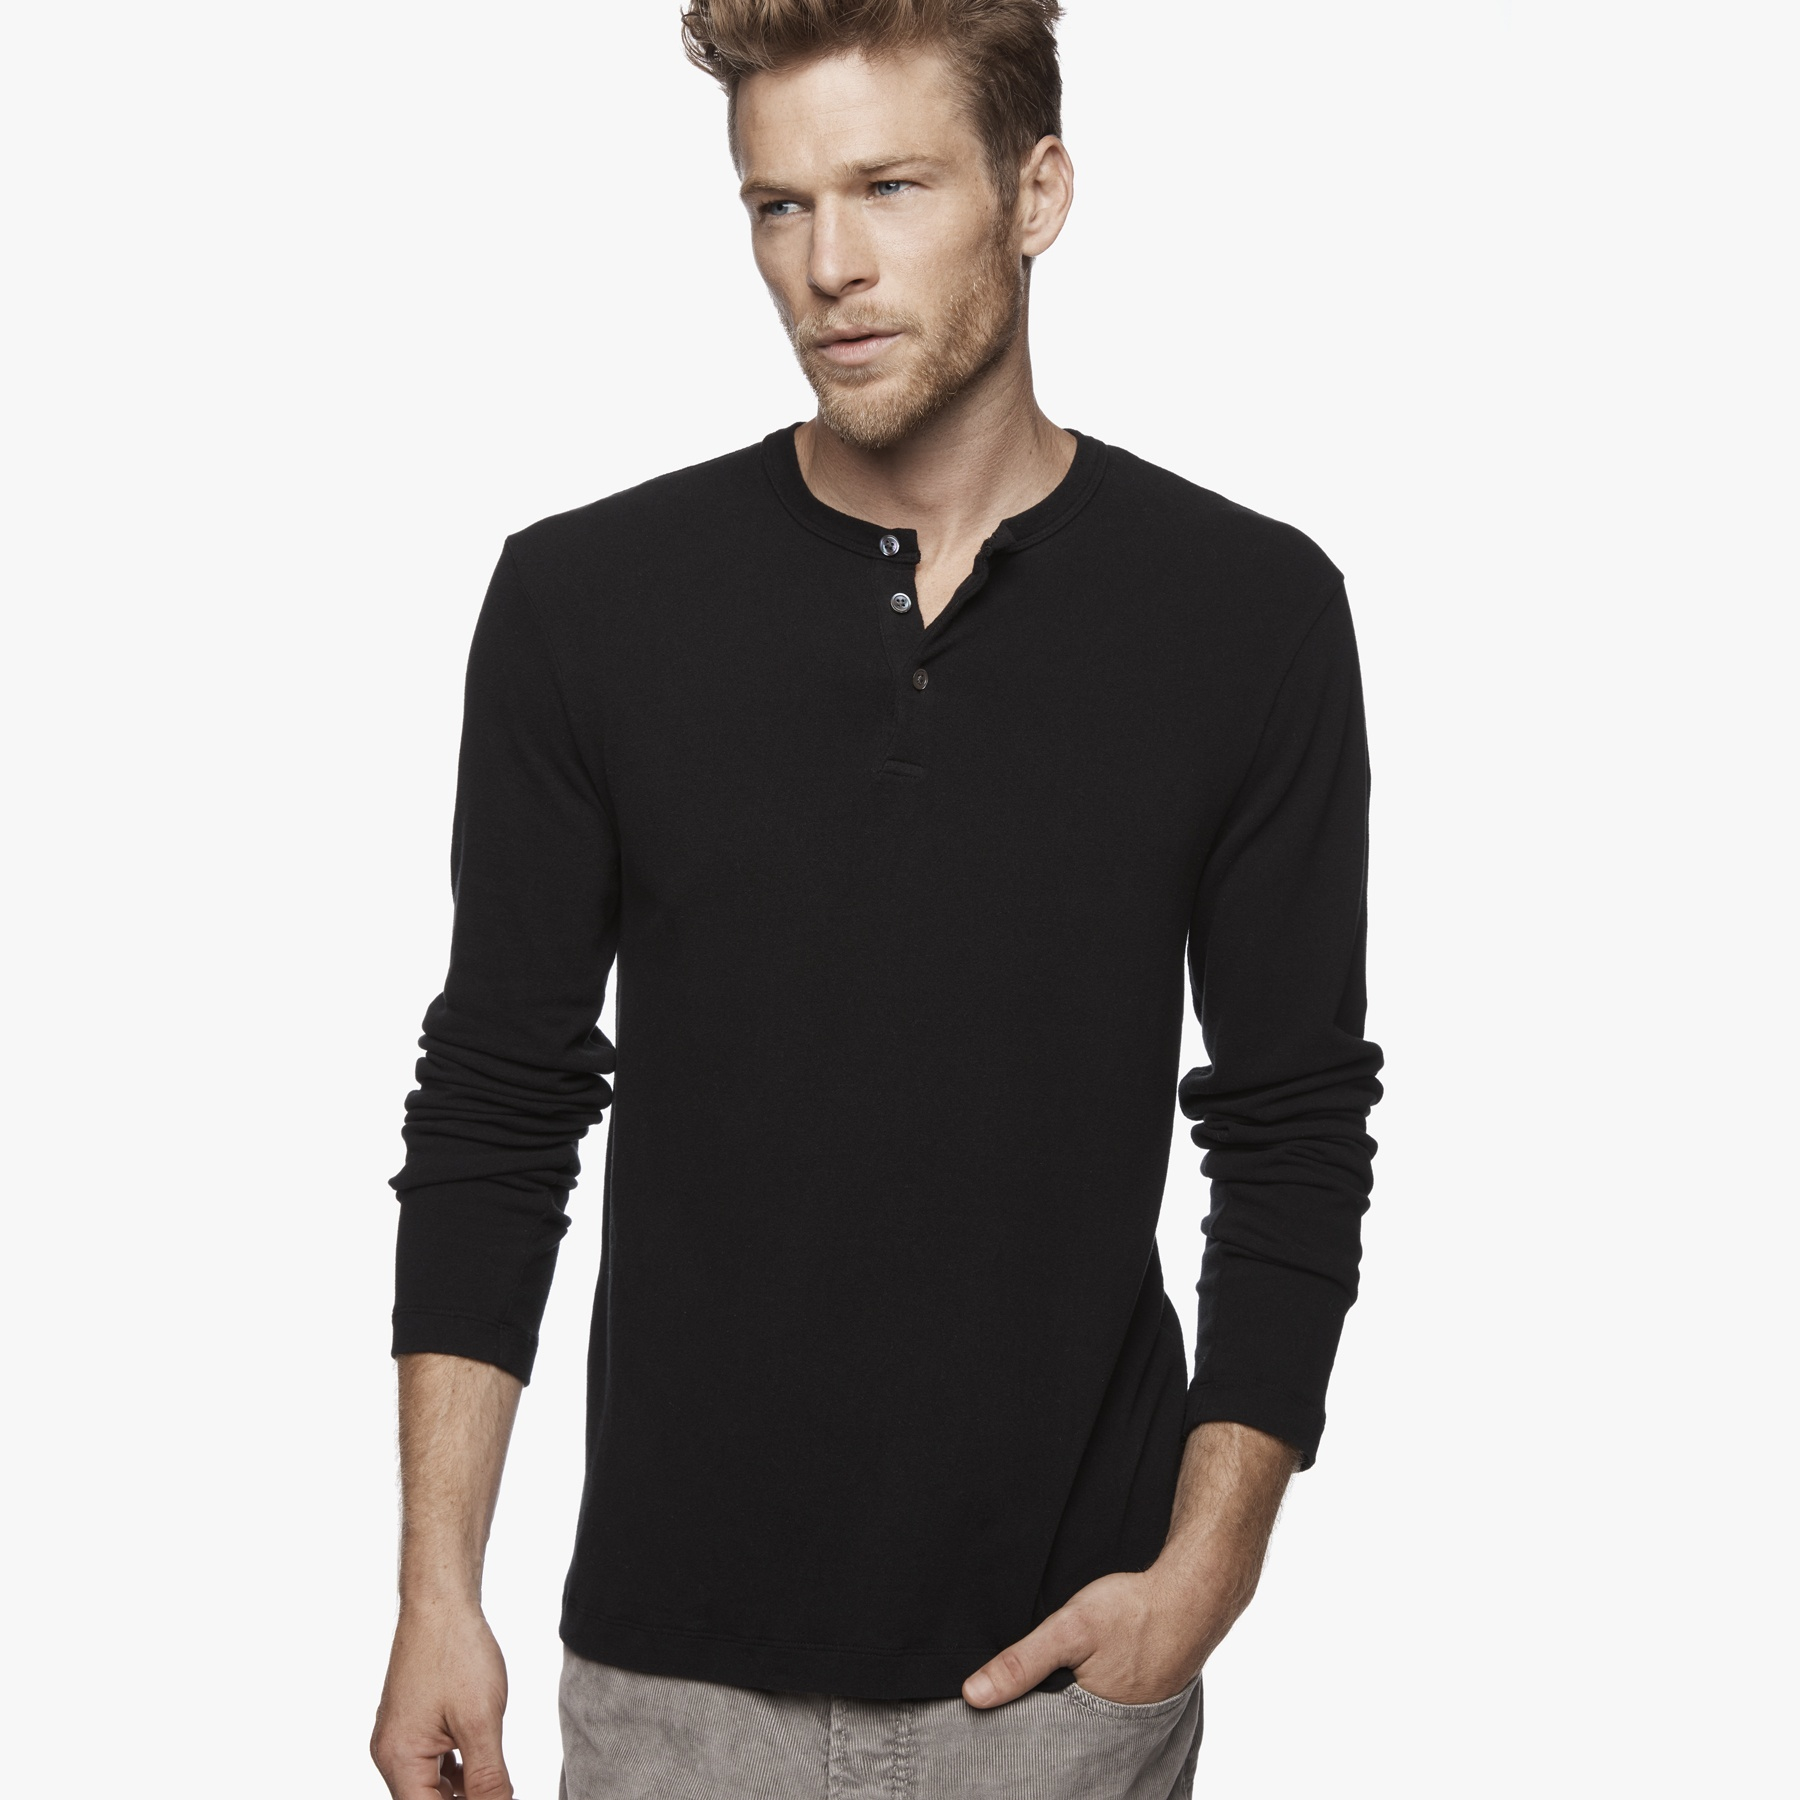 James perse brushed jersey henley in black for men lyst for James perse henley shirt